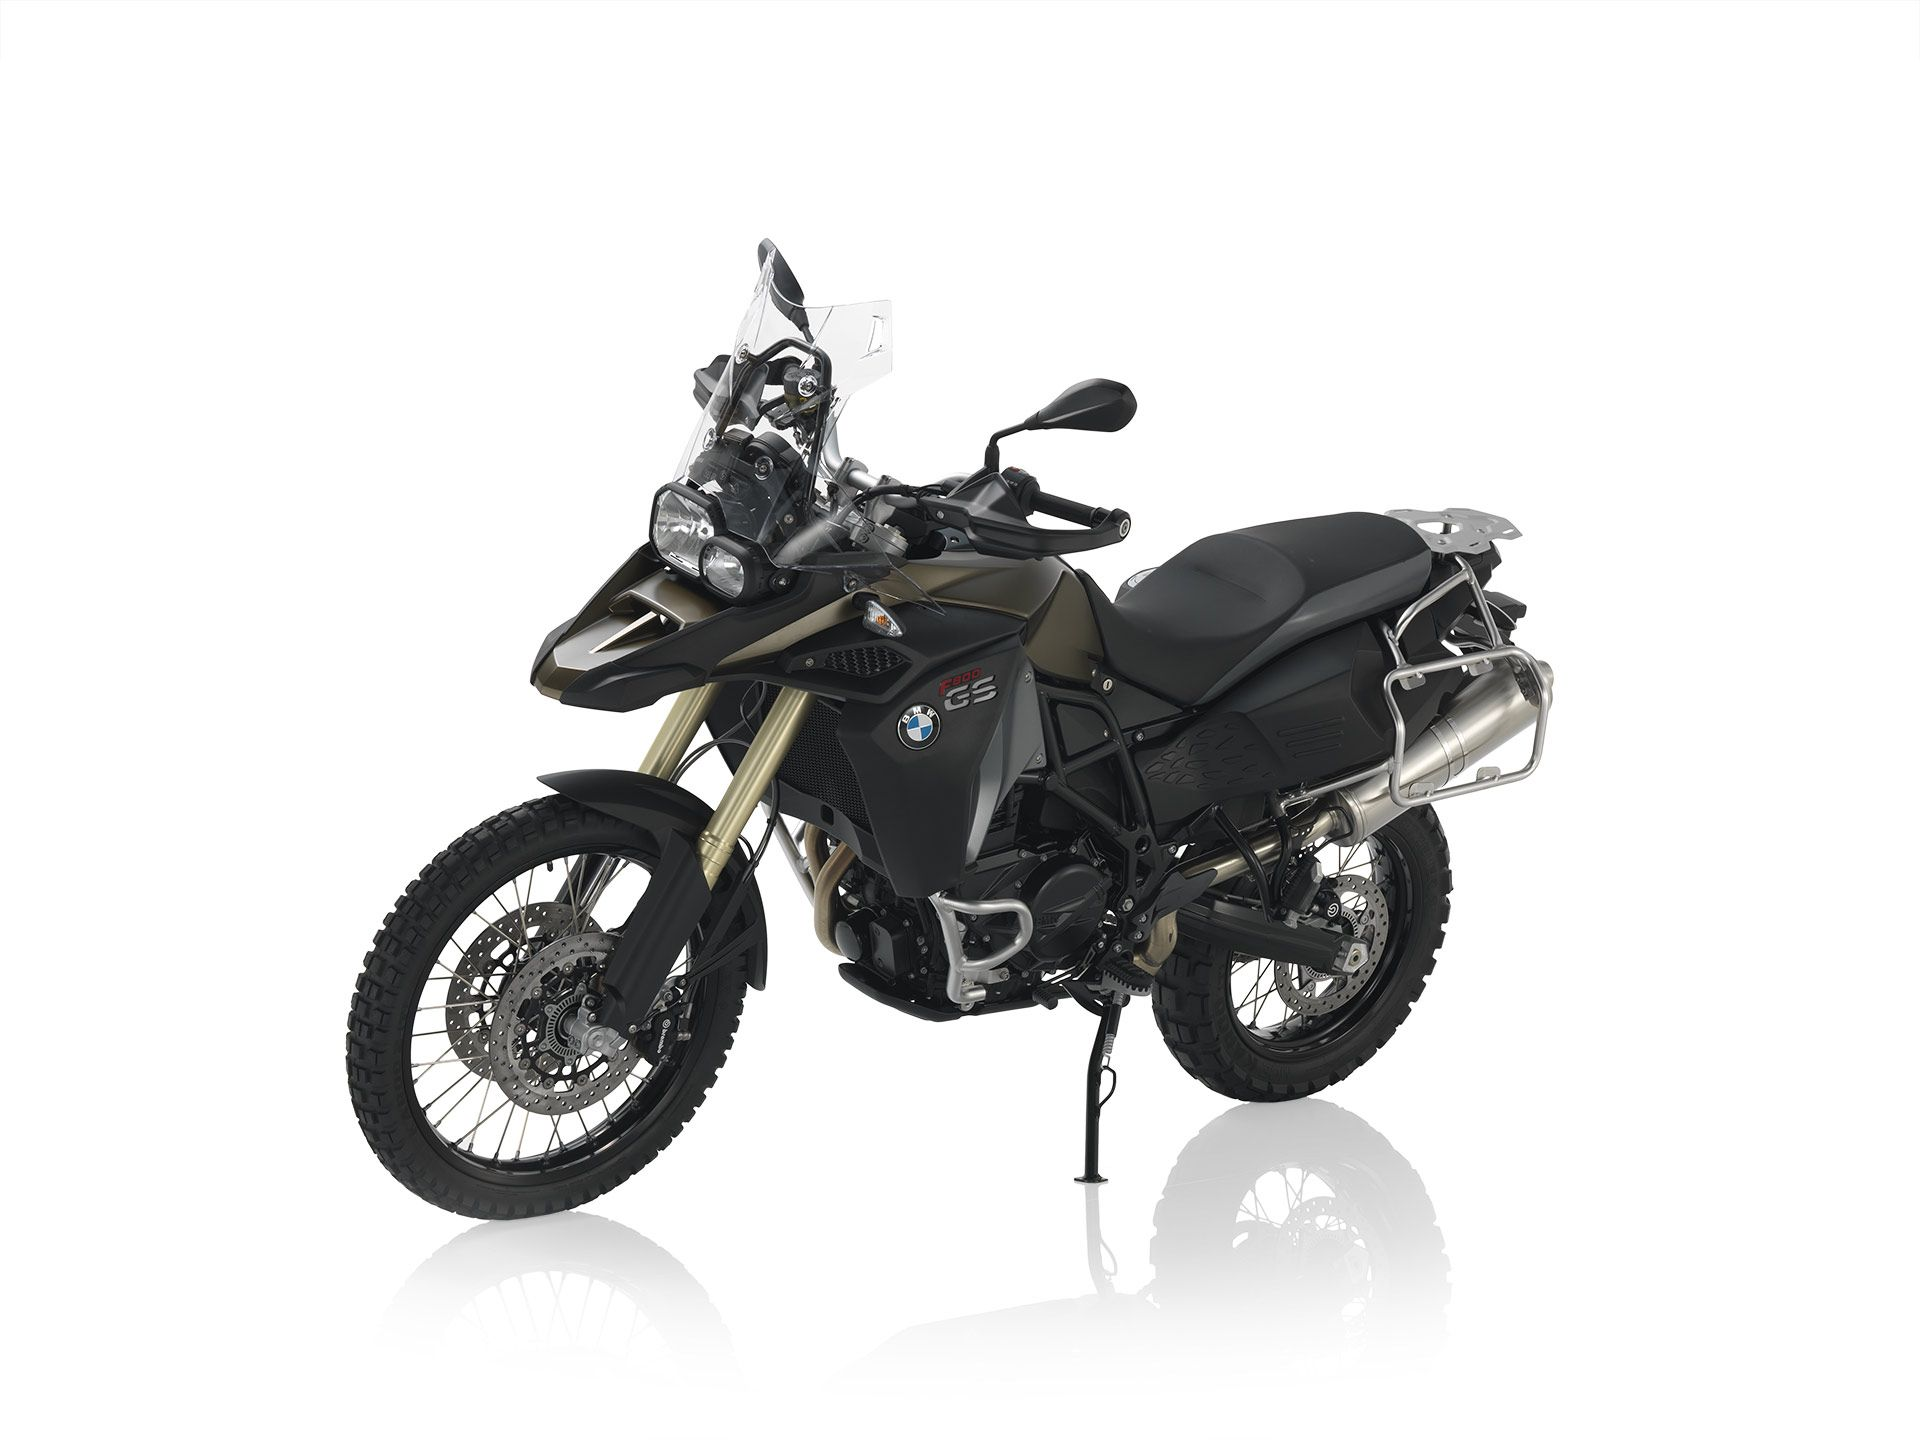 bmw f 800 gs adventure prezzo e scheda tecnica - inmoto.it